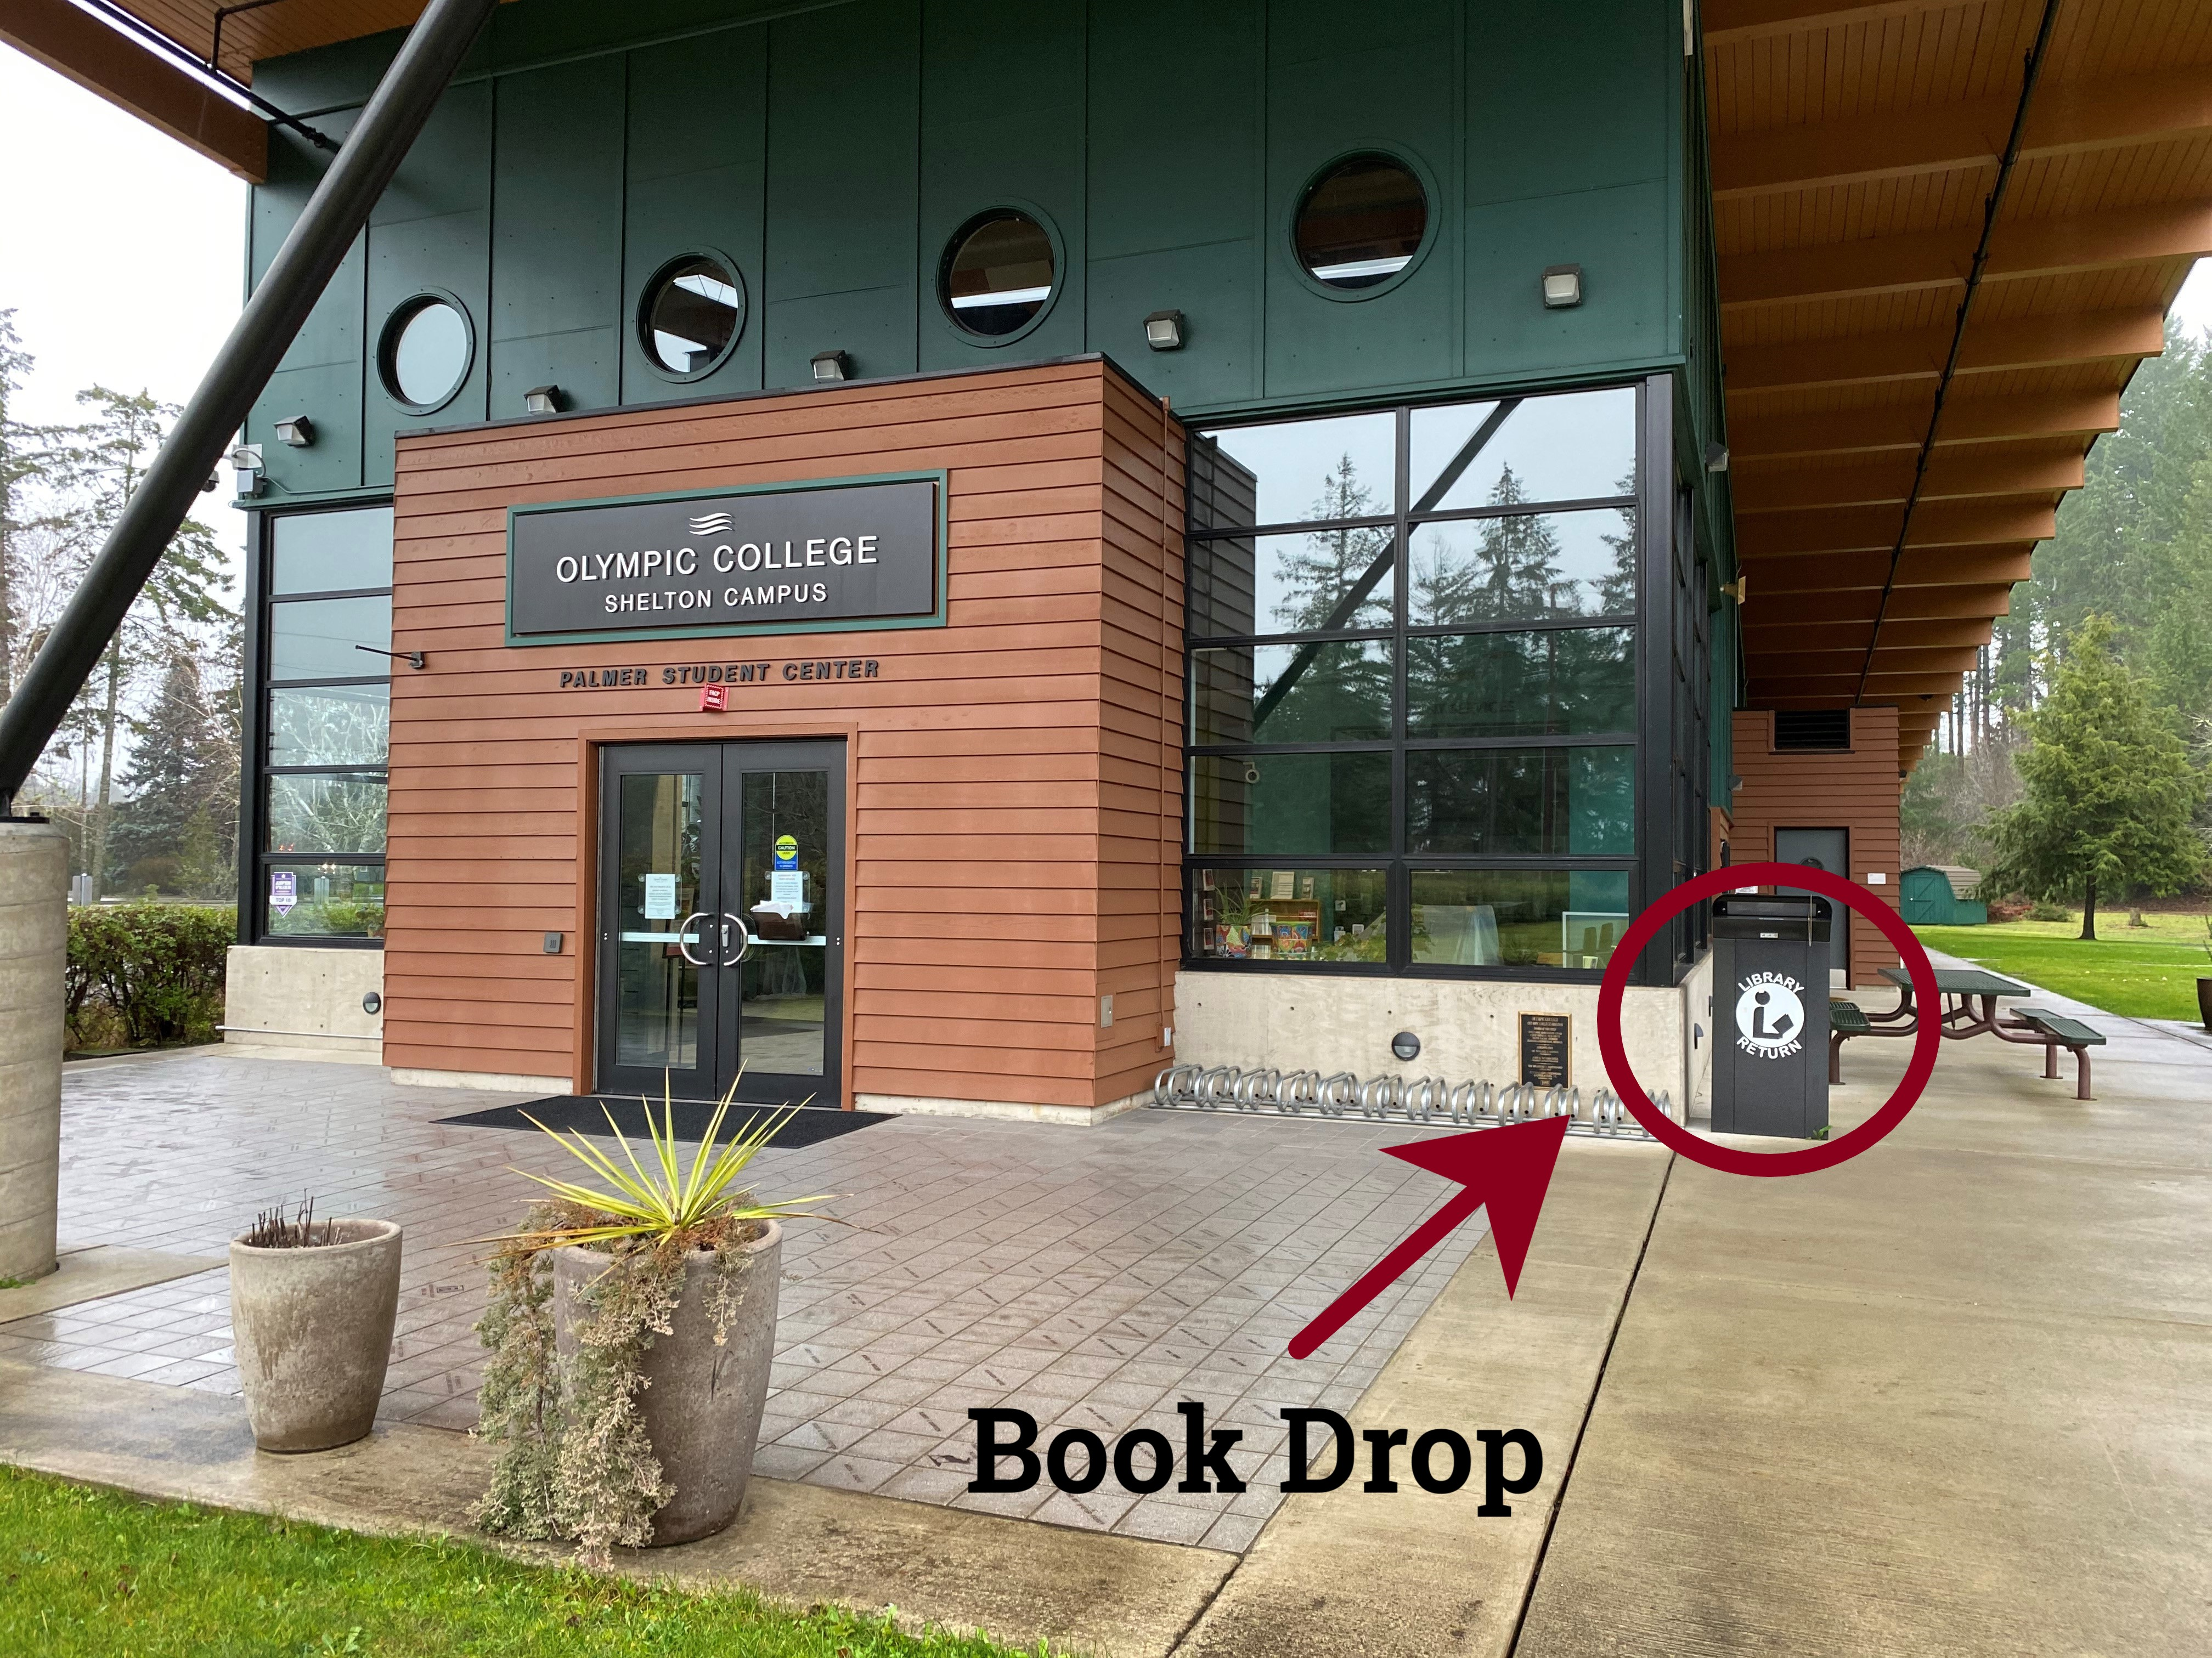 Exterior of the Shelton campus Palmer Student Center with the book drop highlighted